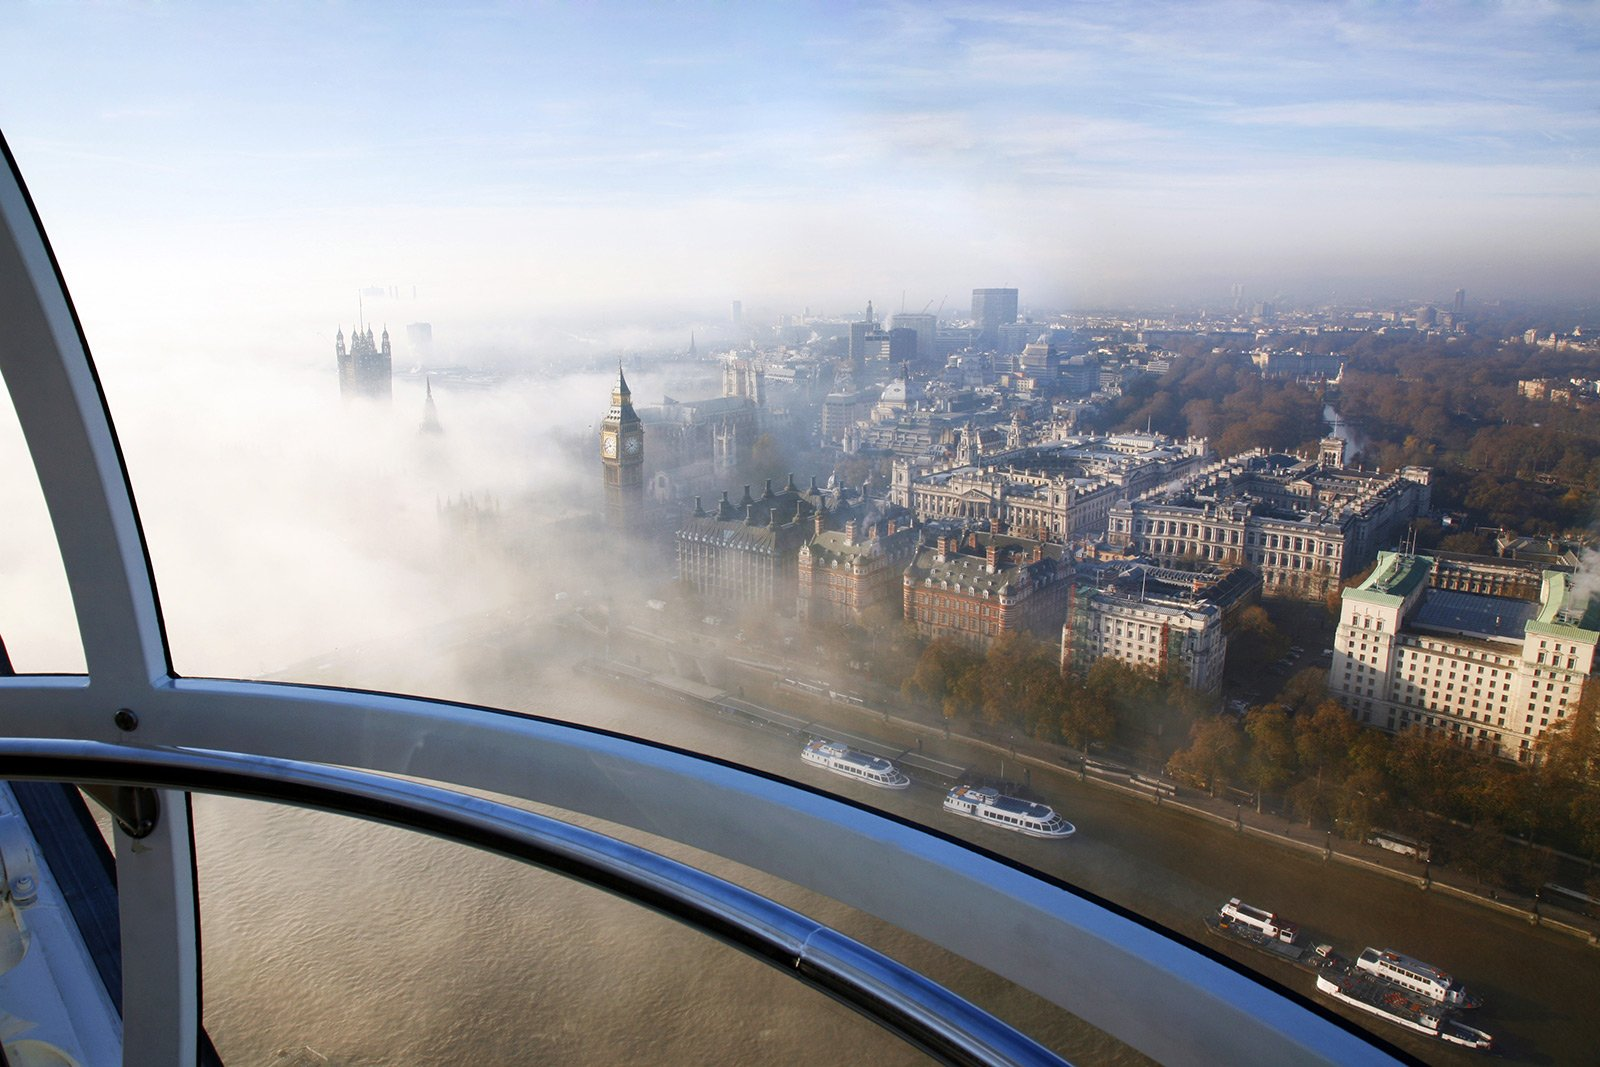 How to take a ride on the London Eye in London